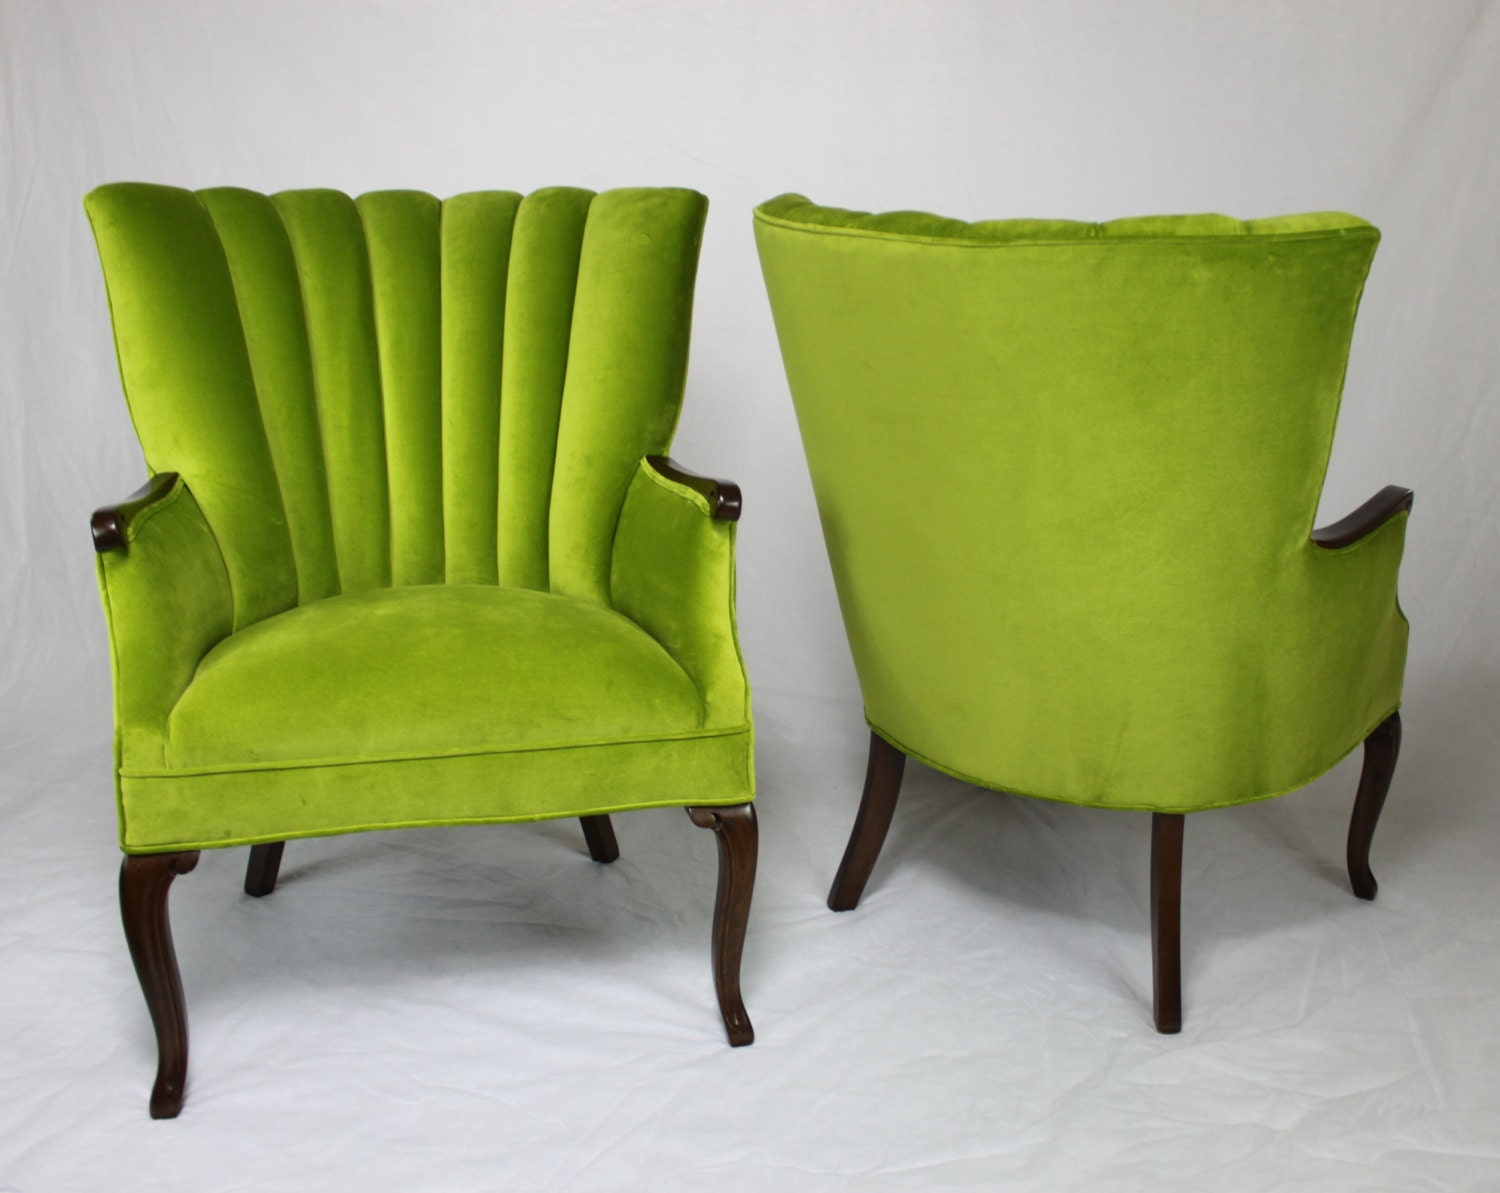 SOLD Pair Of Vintage Antique Channel Back Chairs In Apple